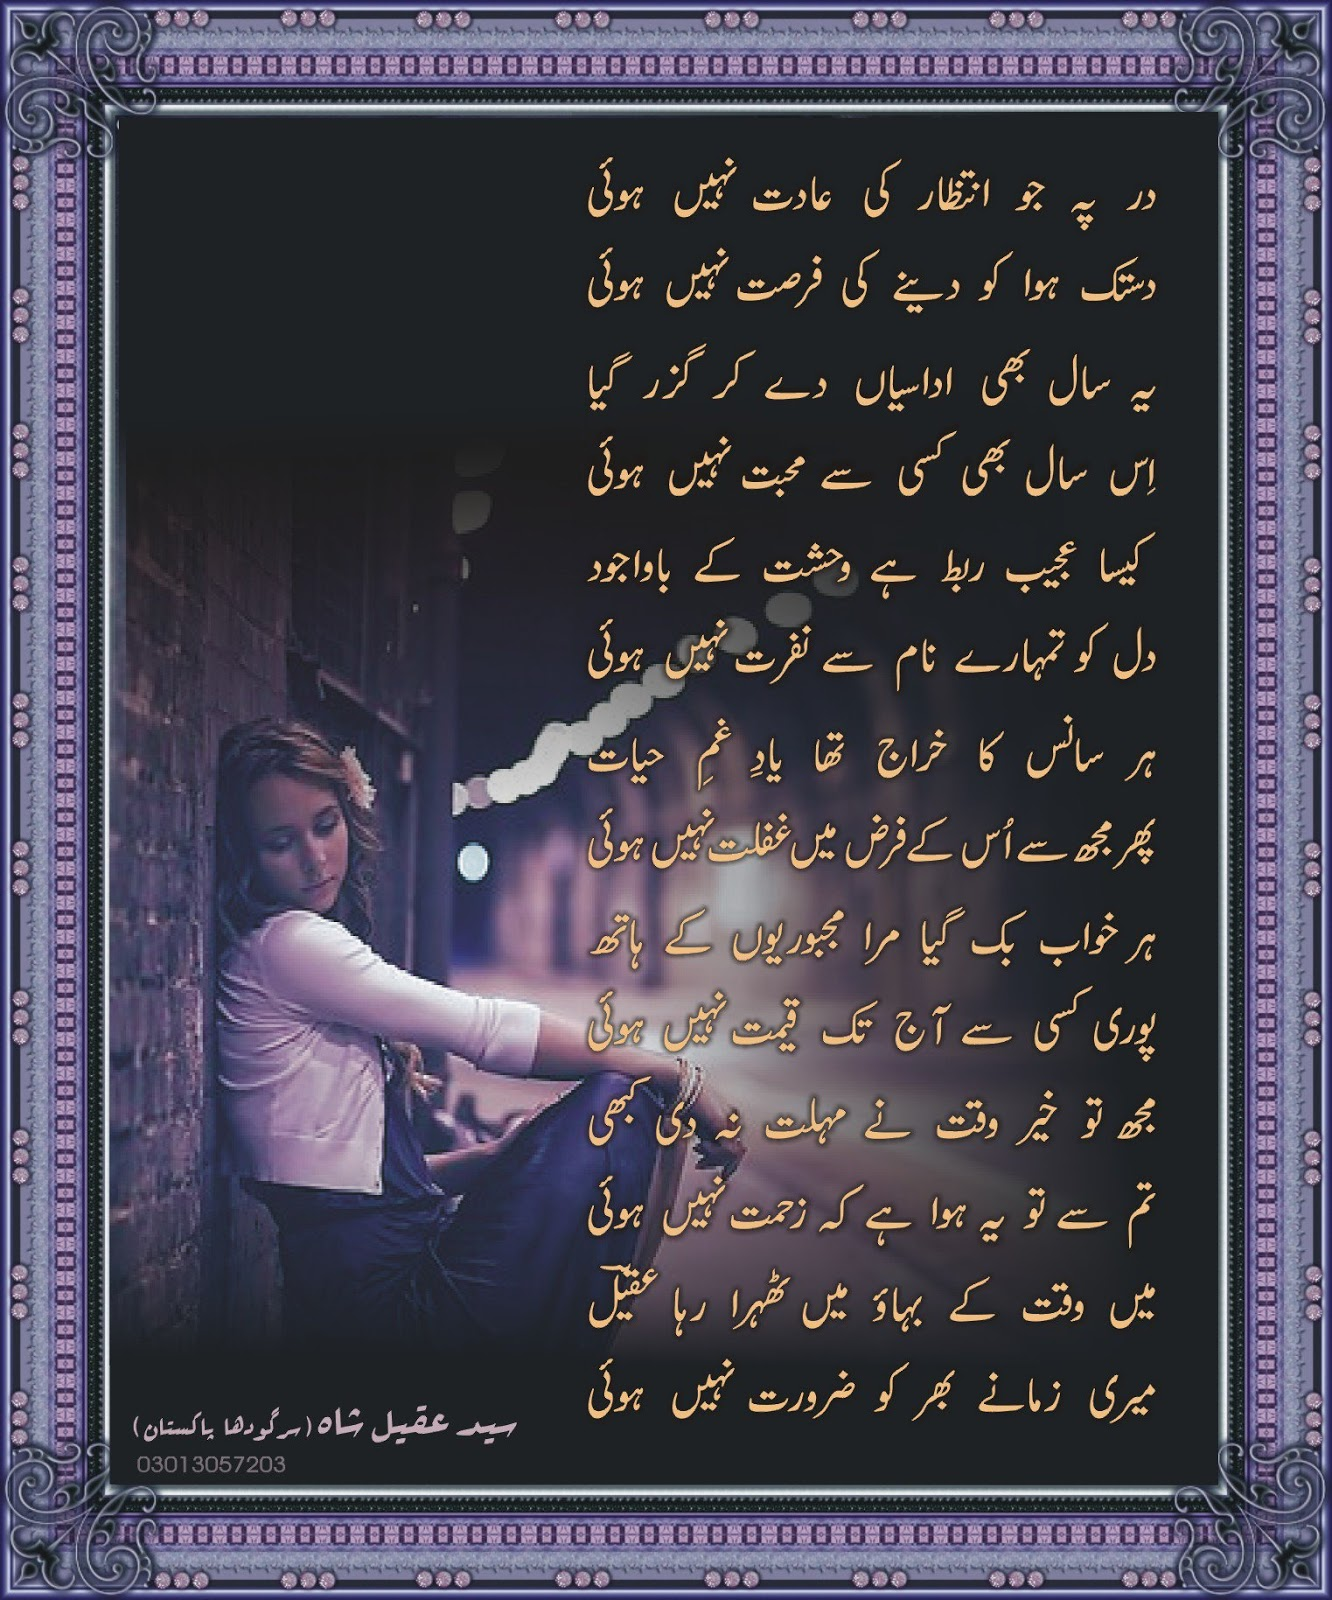 Urdu Beautiful Sad And Lovely Poetry Wallpapers And Photos